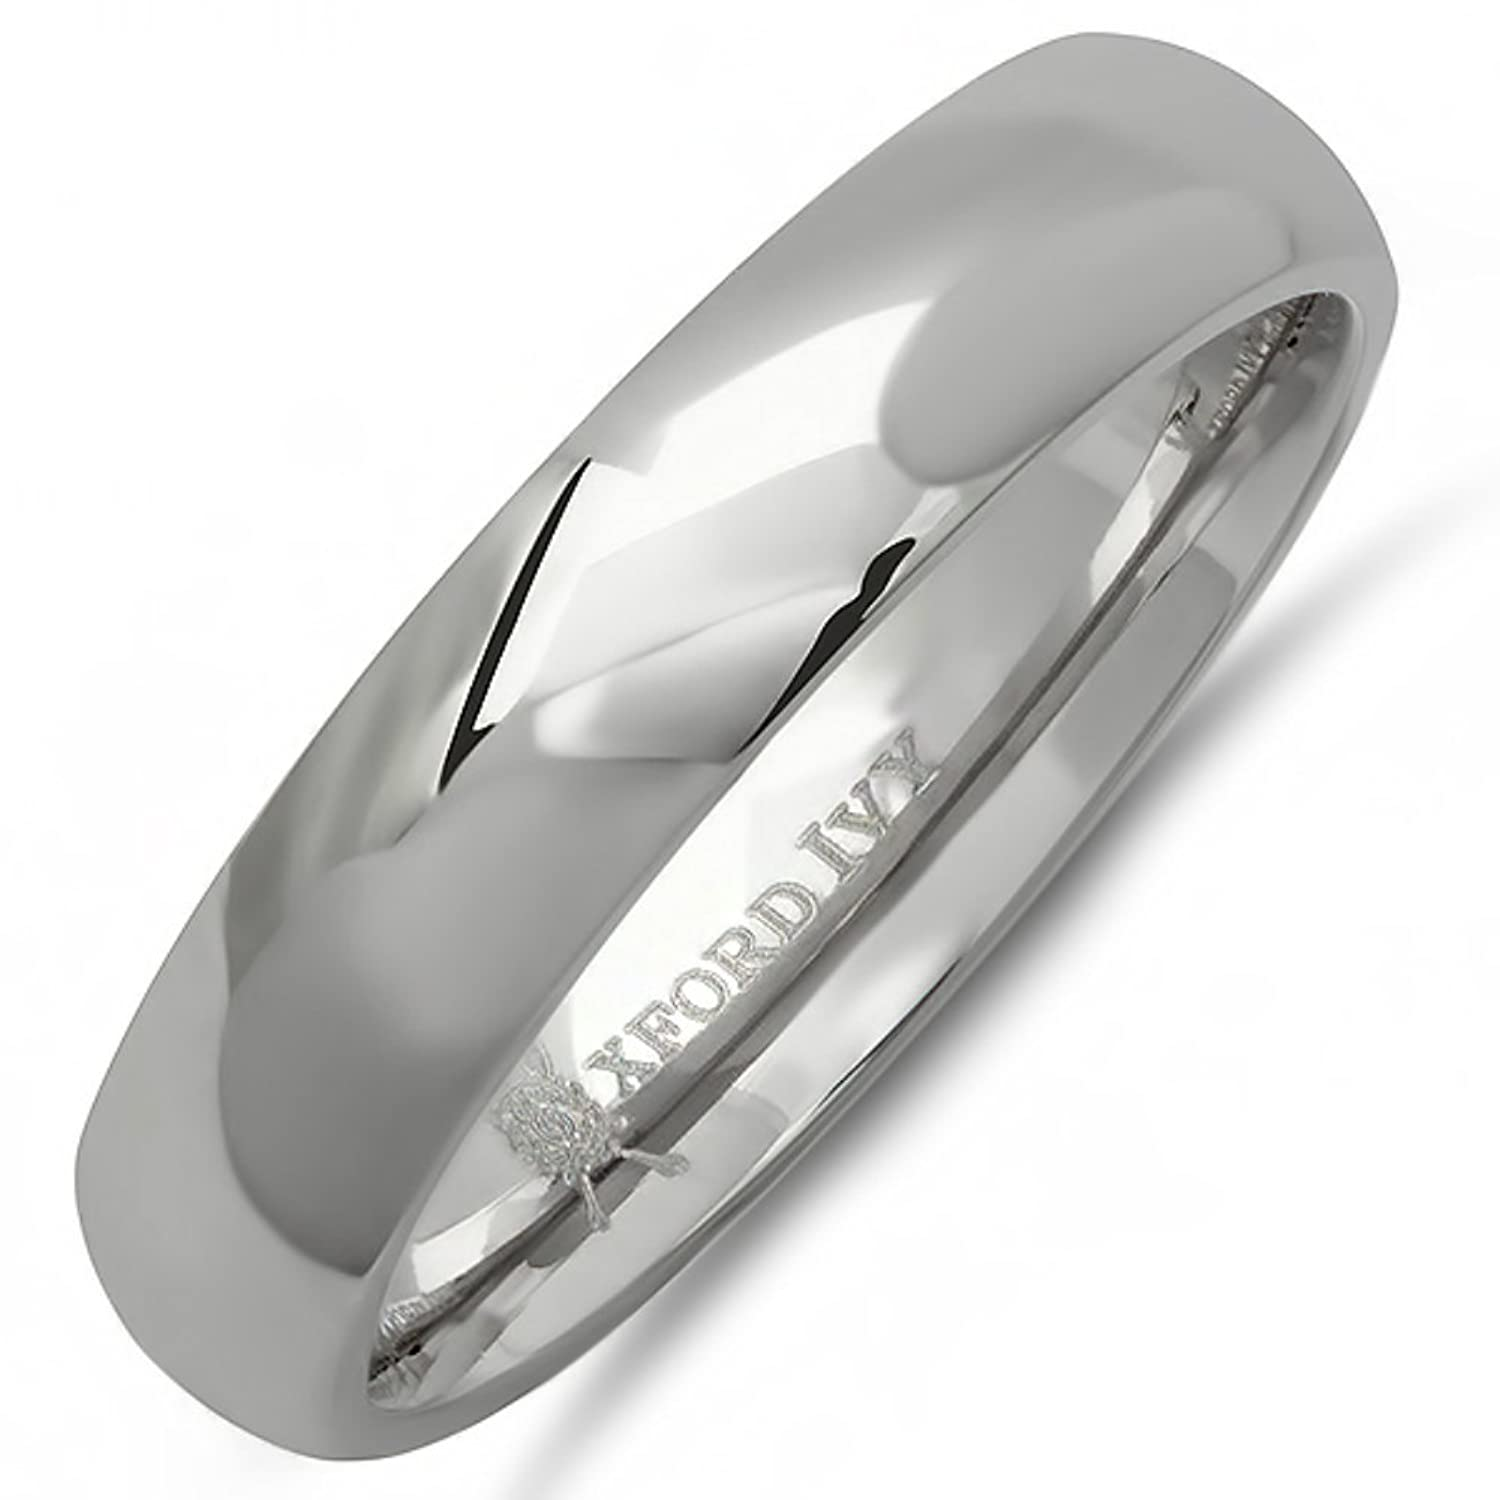 rings lovely ring construction vs engagement beautiful com elegant band wedding ricksalerealty of